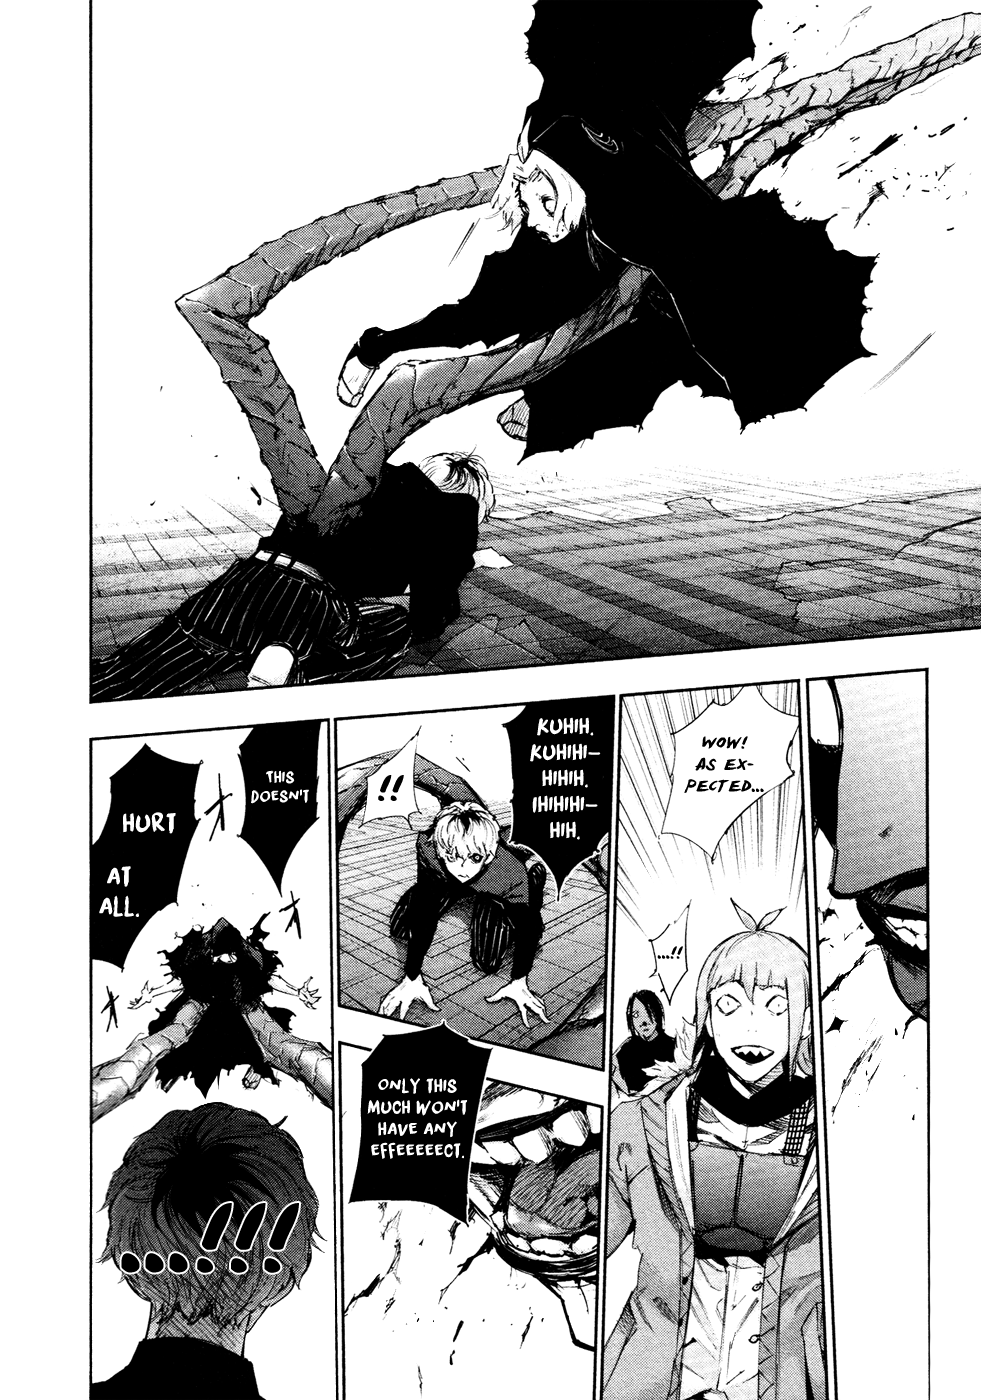 Tokyo Ghoulre Chapter 25  Online Free Manga Read Image 6